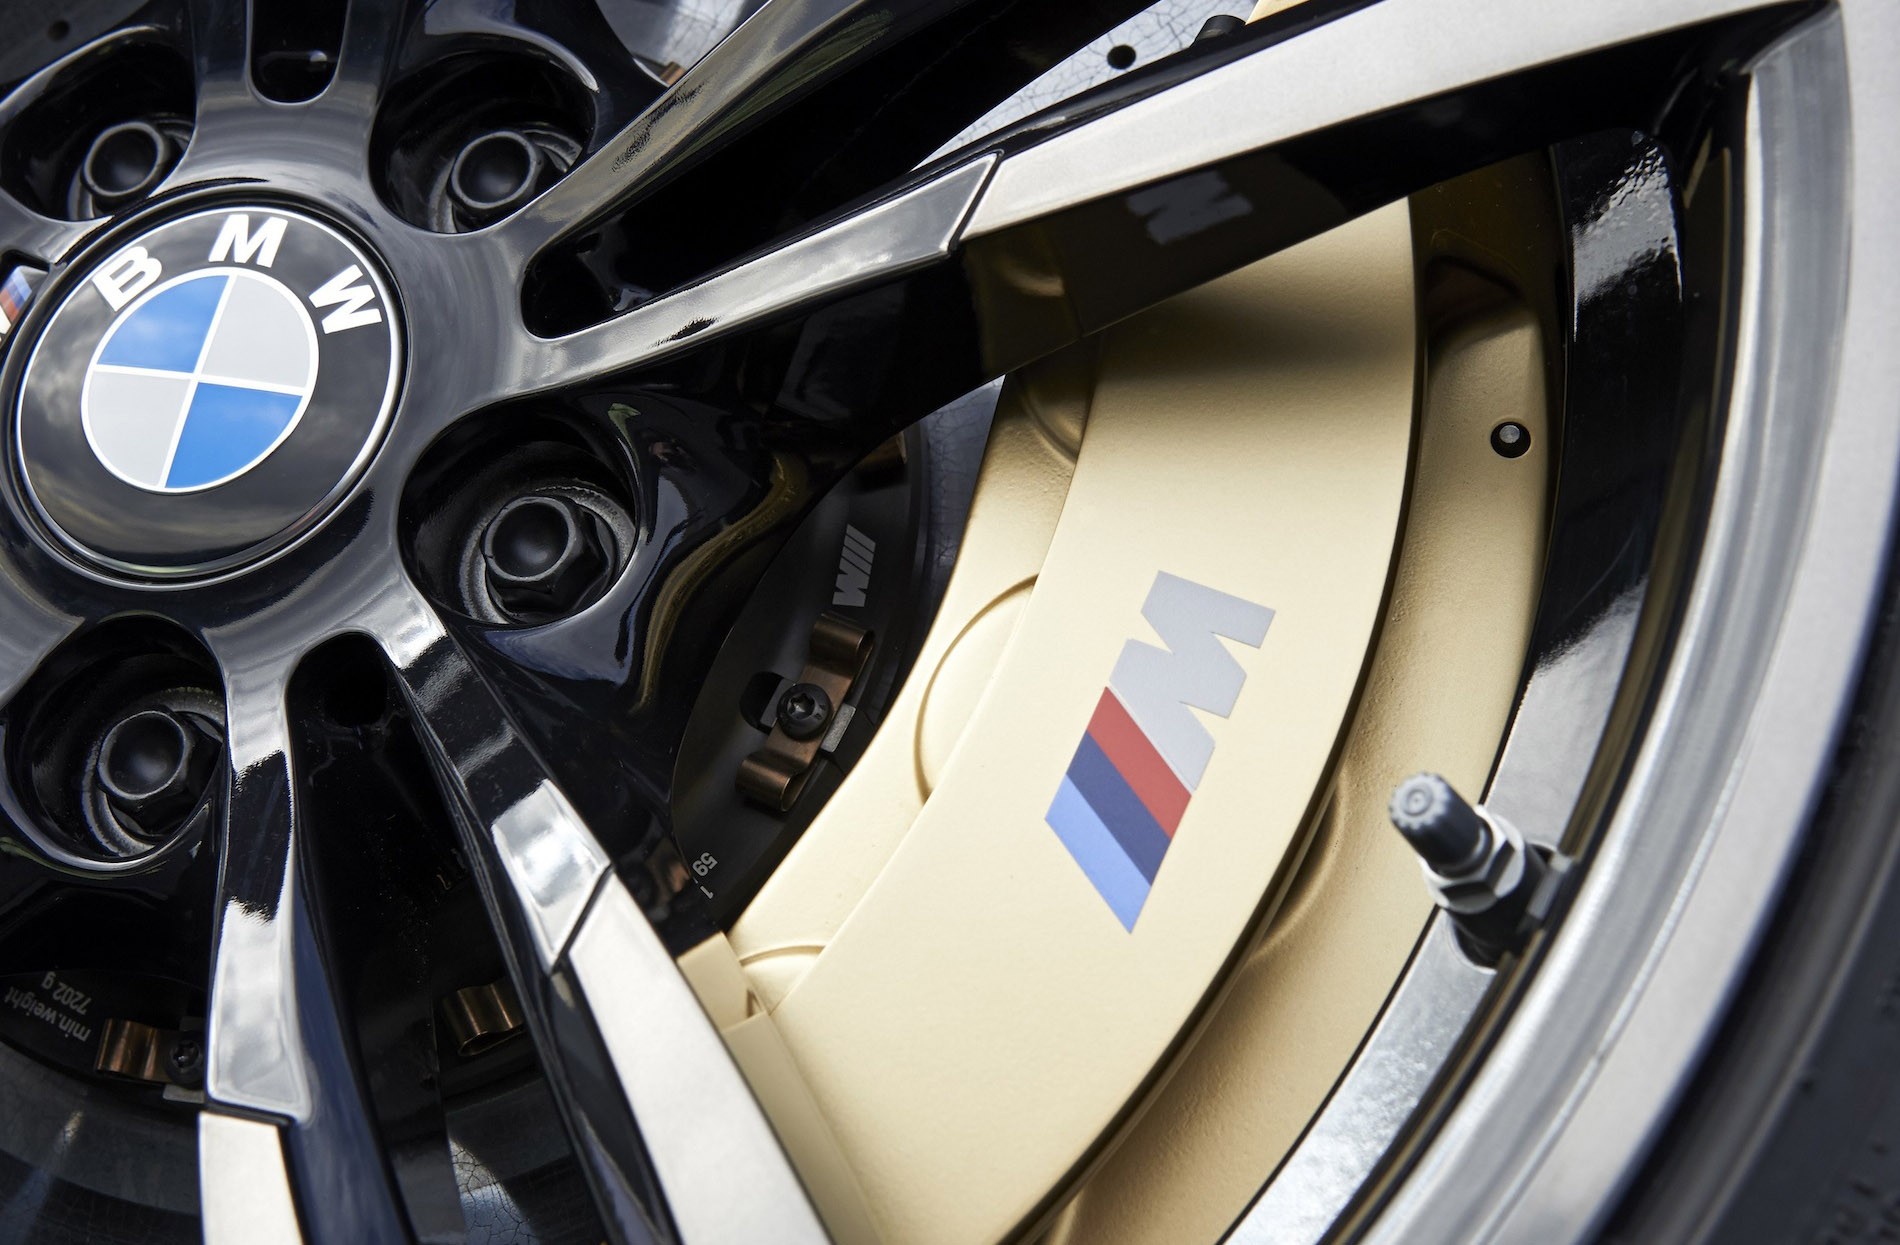 Should You Buy Carbon Ceramic Brakes With Your Bmw